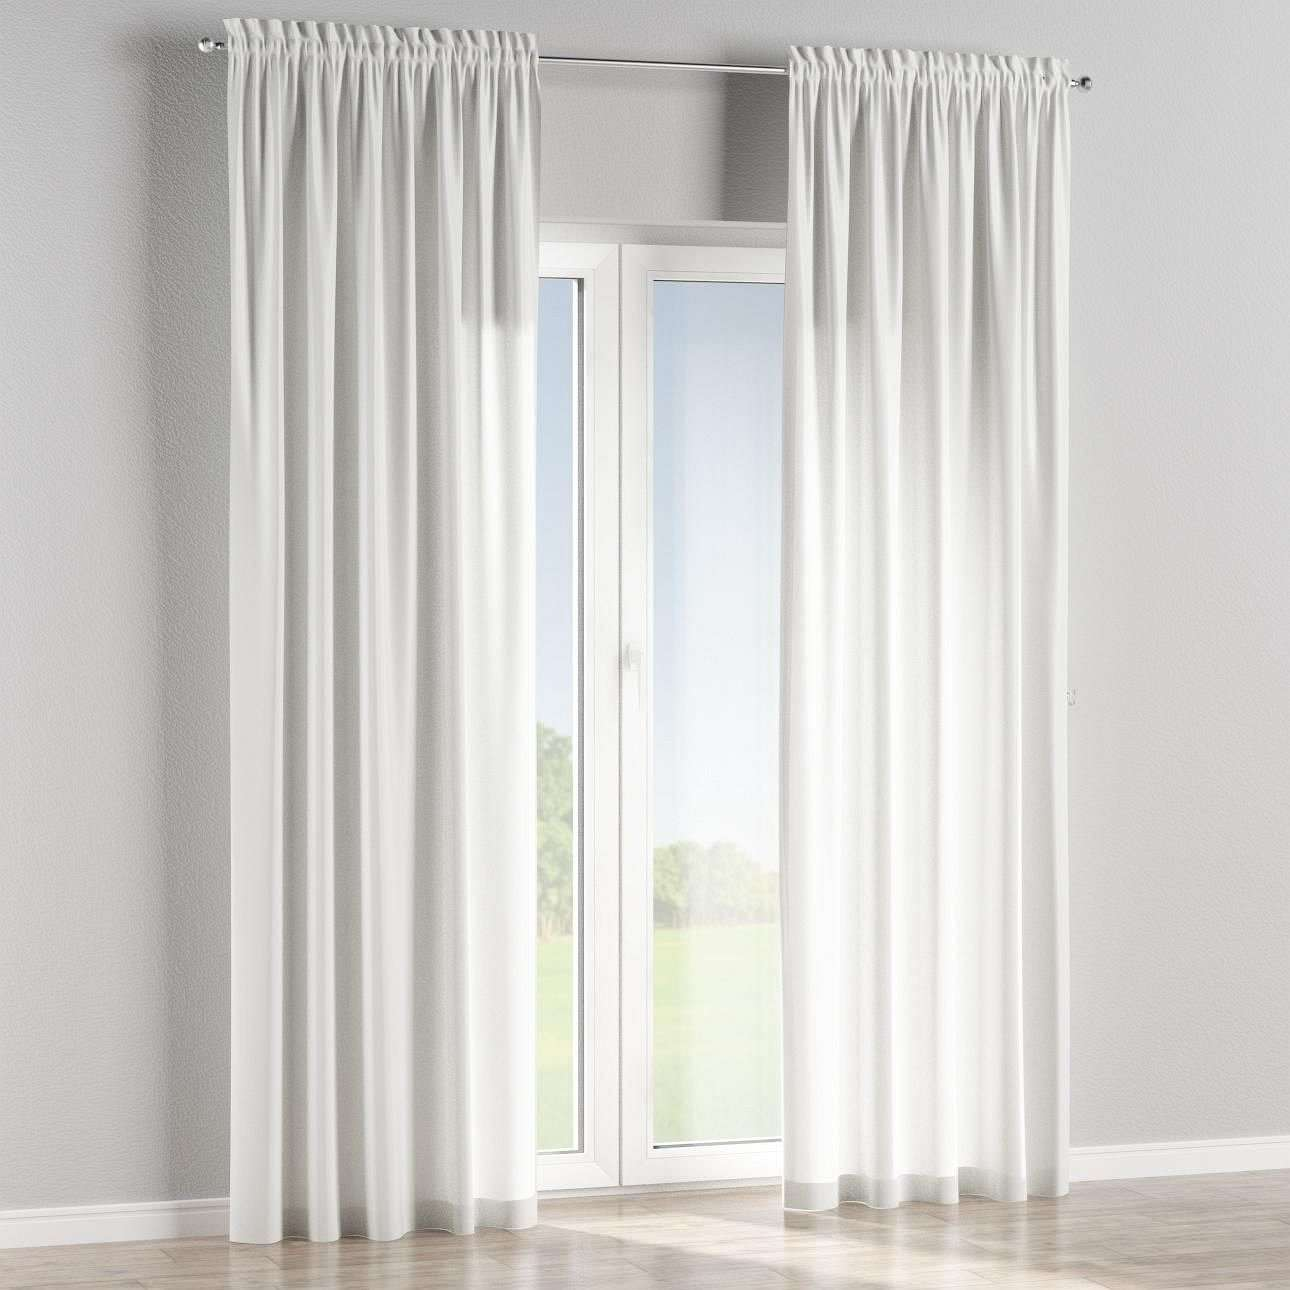 Slot and frill curtains in collection Rustica, fabric: 140-32